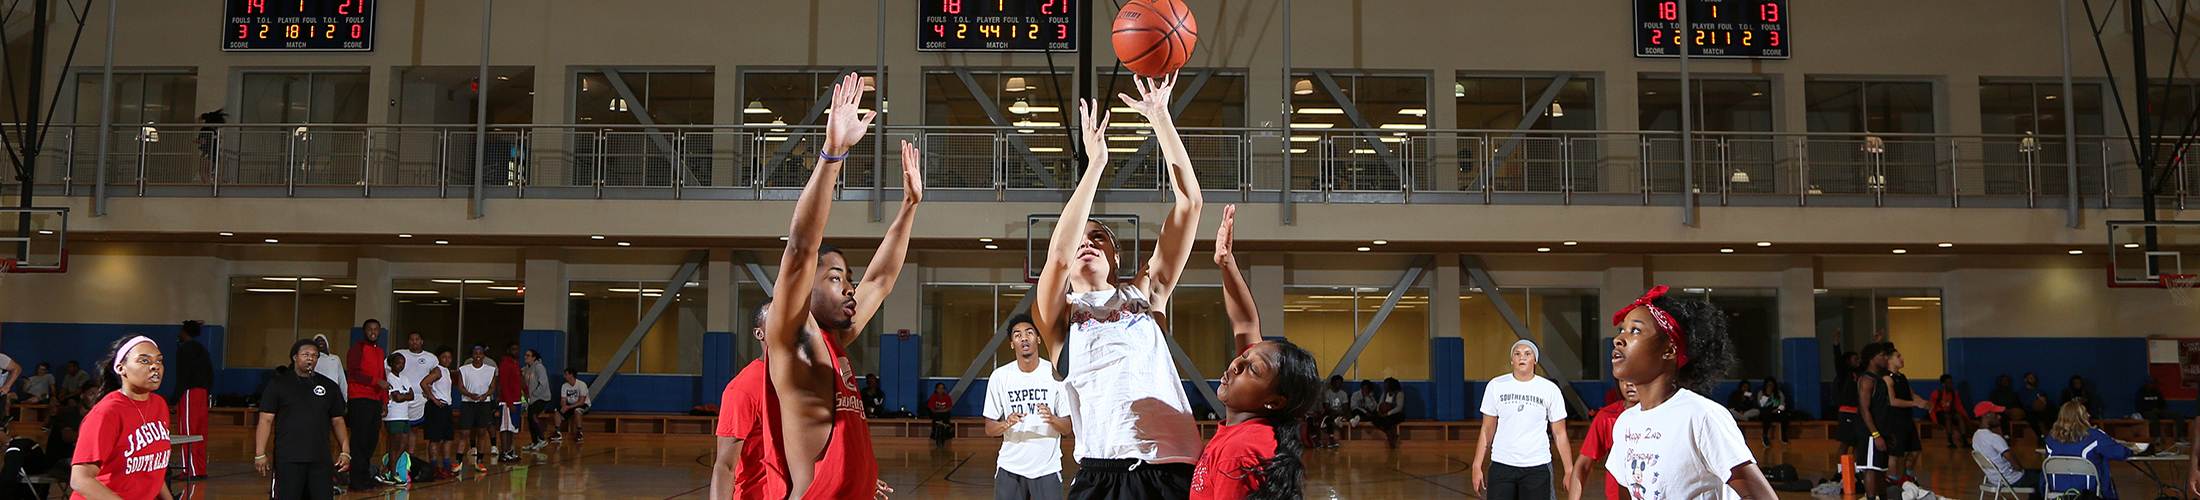 Students playing basketball in campus rec gym.